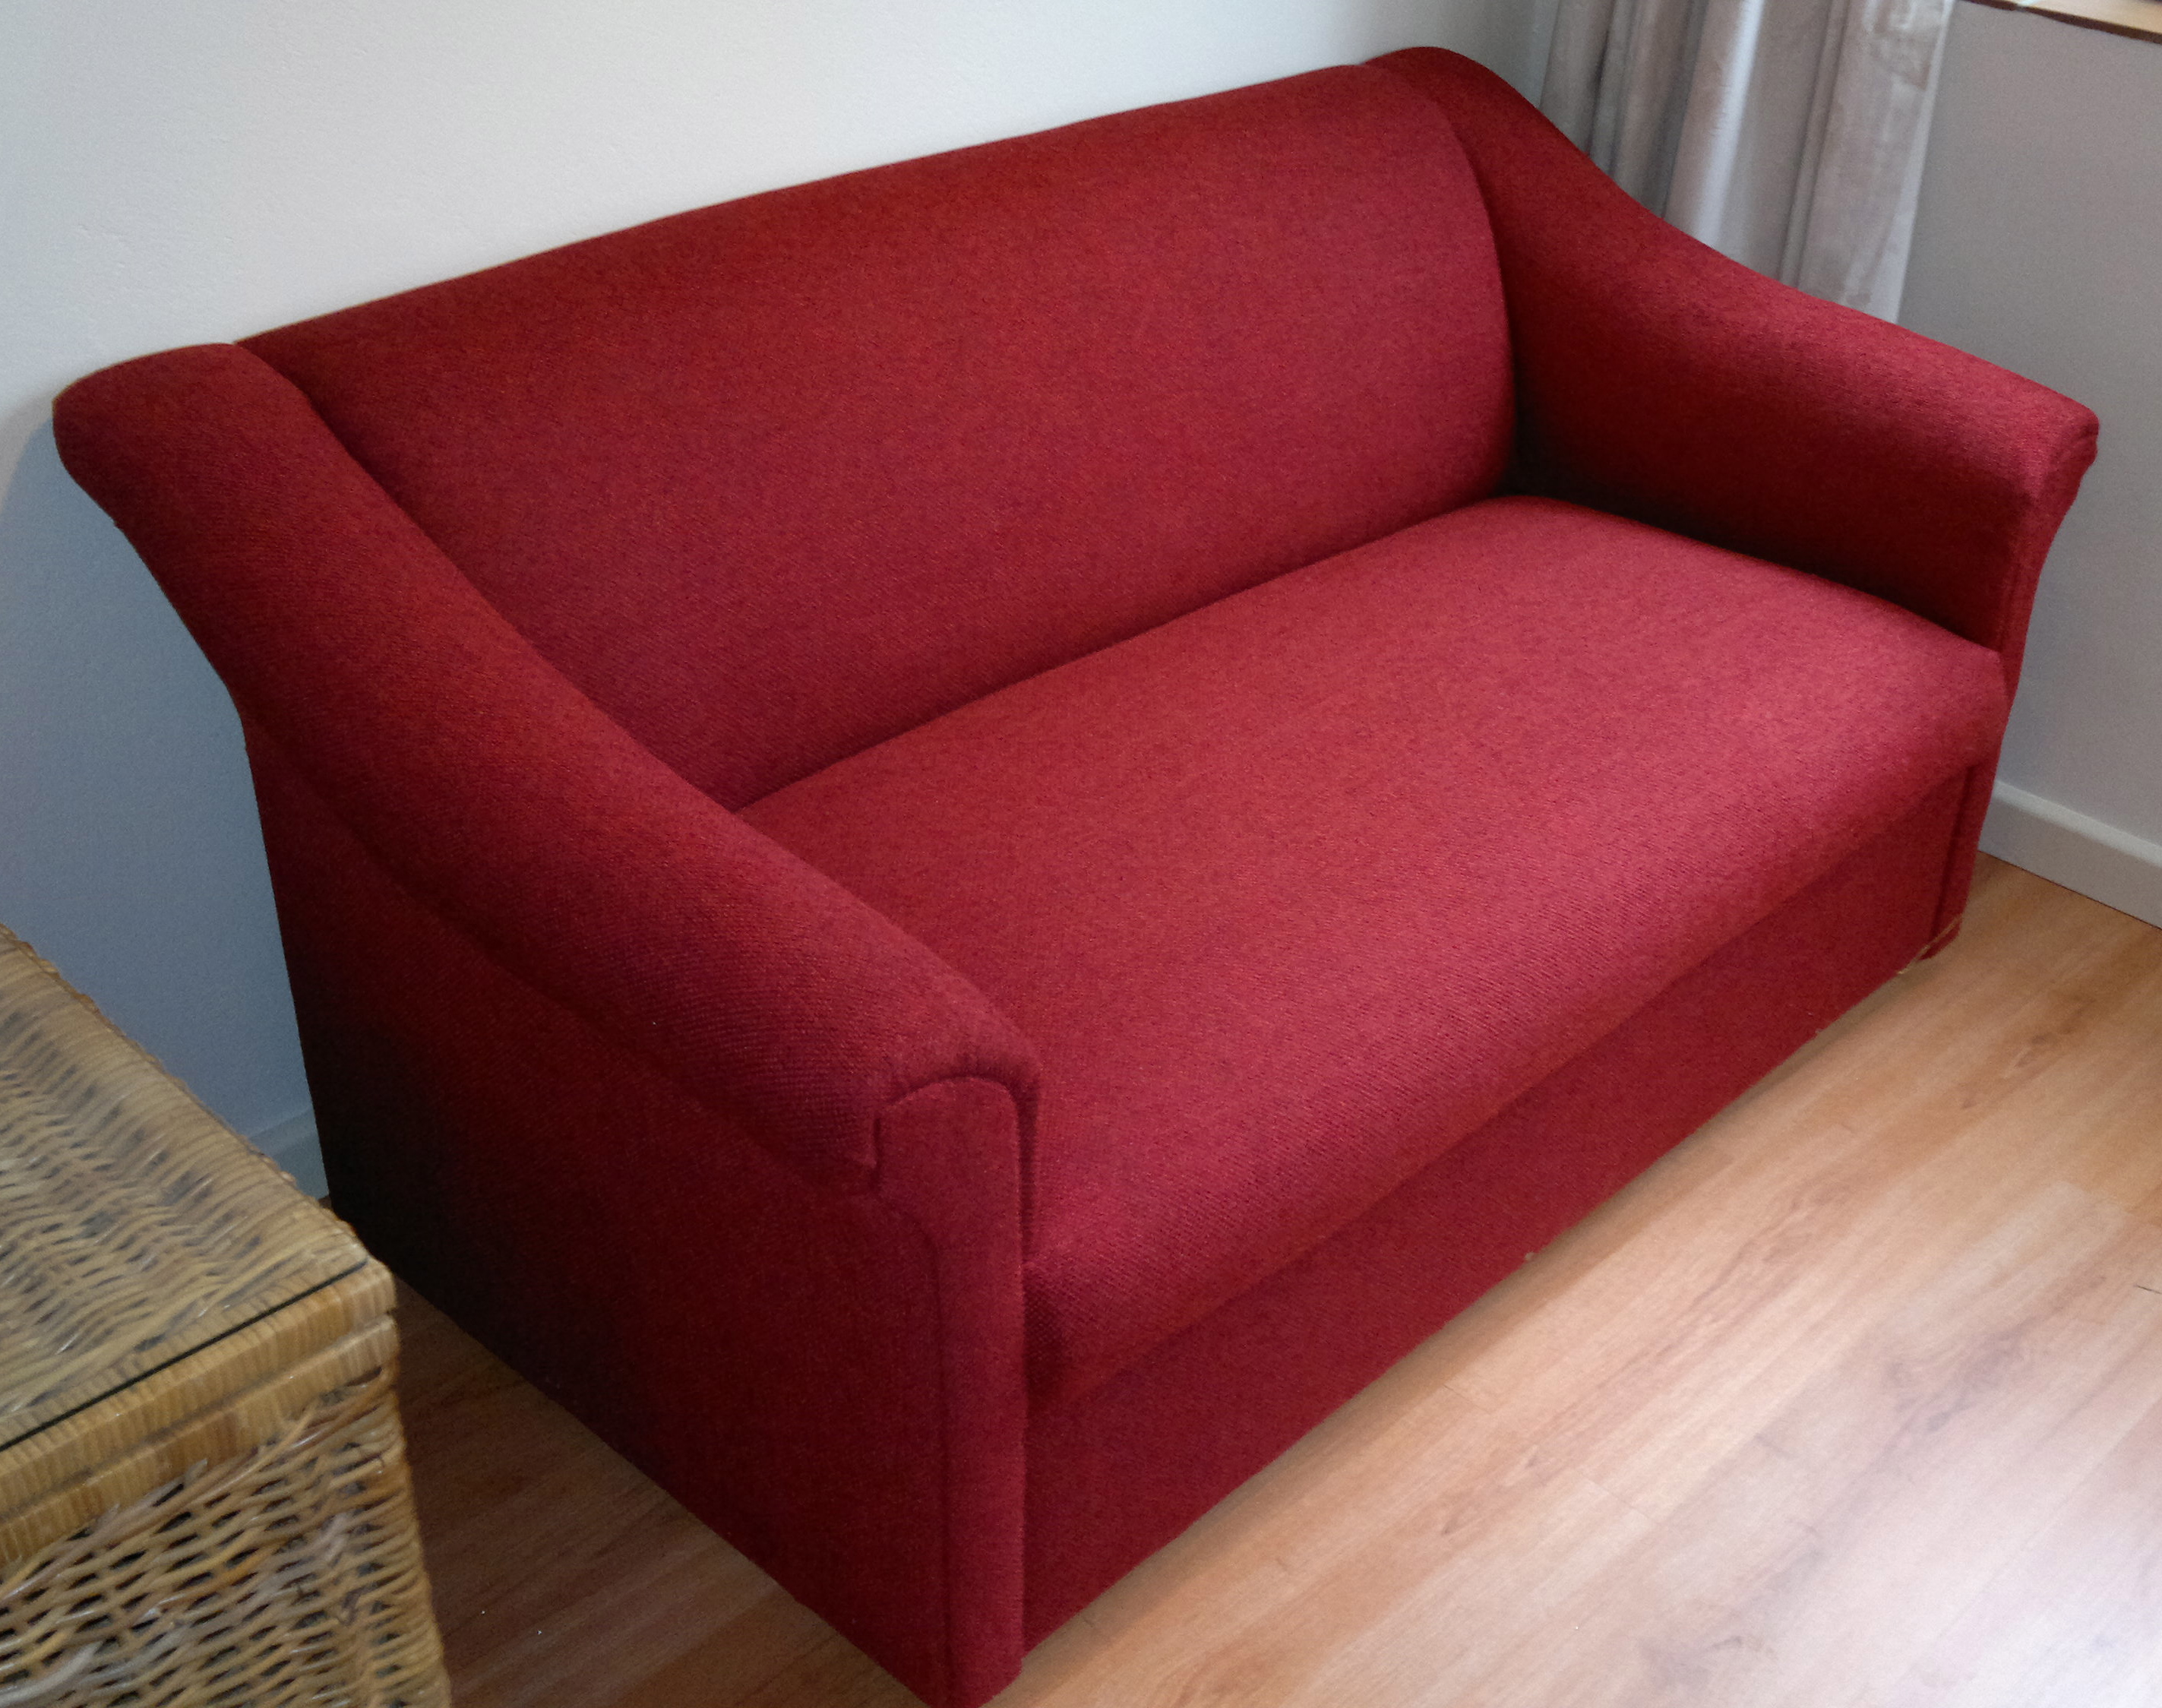 Fabric Sofa Small Red Upholstery Cape Town